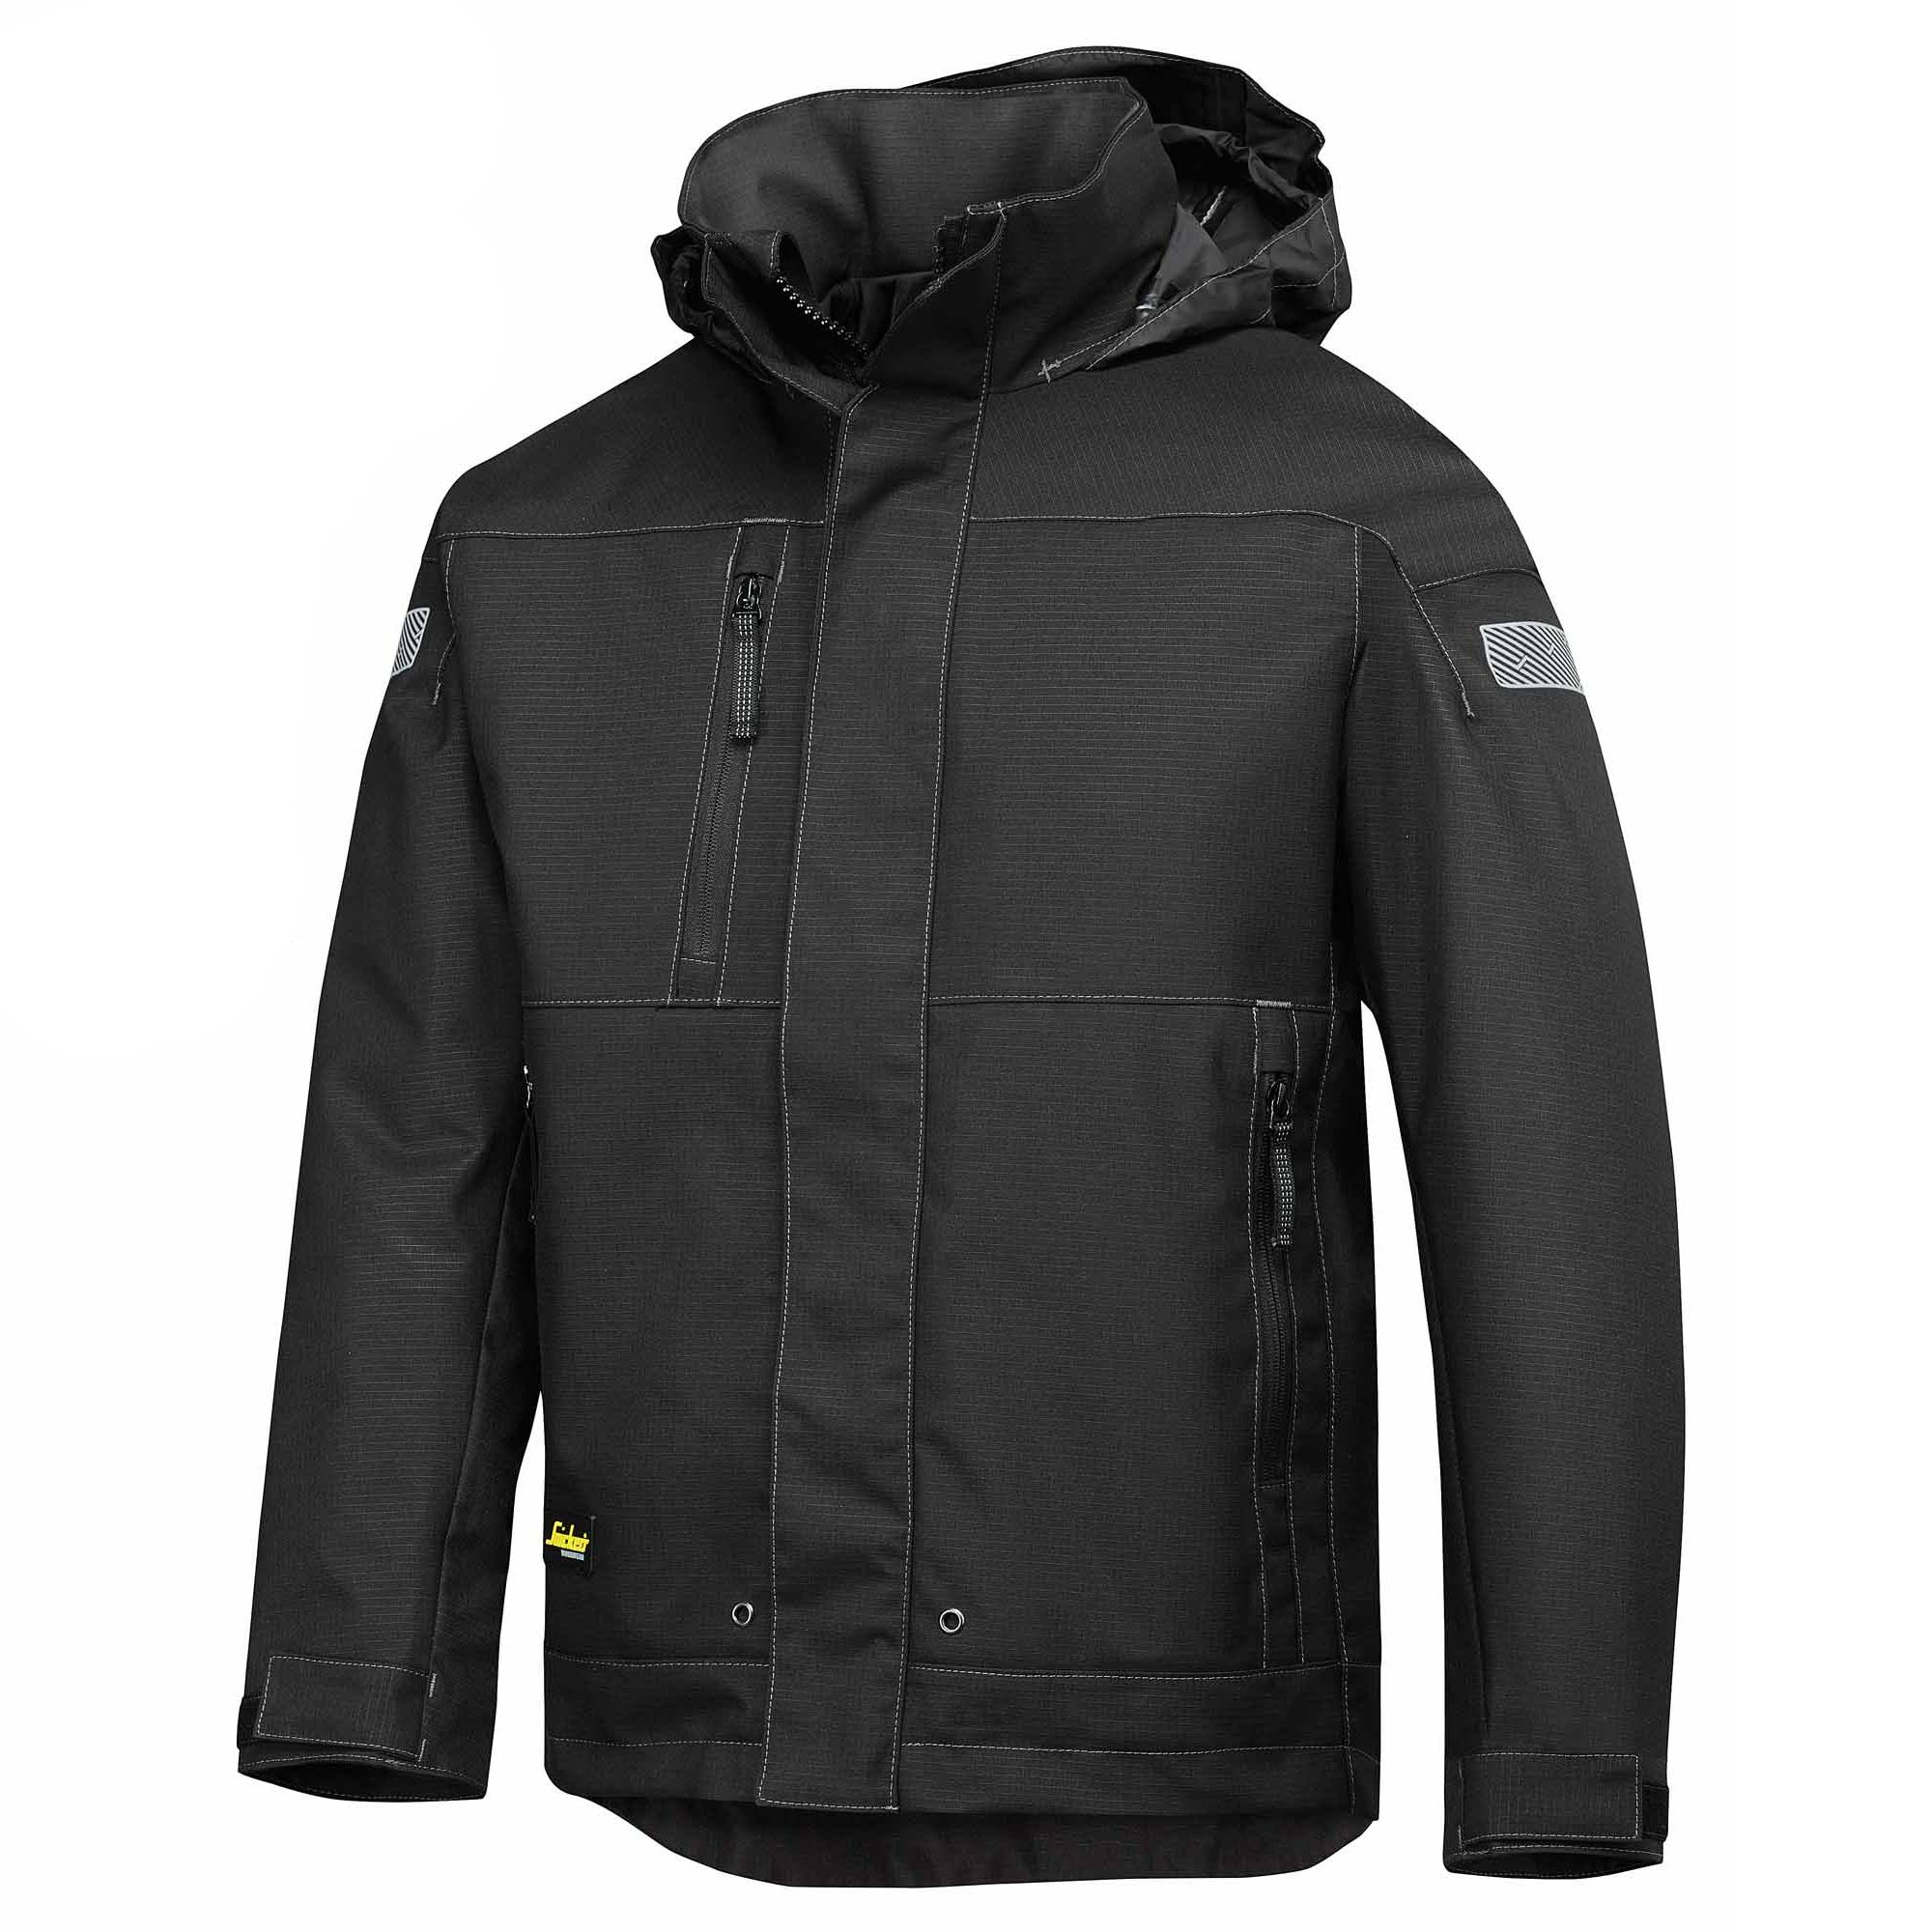 Snickers 1178 | Snickers Waterproof Winter Jacket (Black)